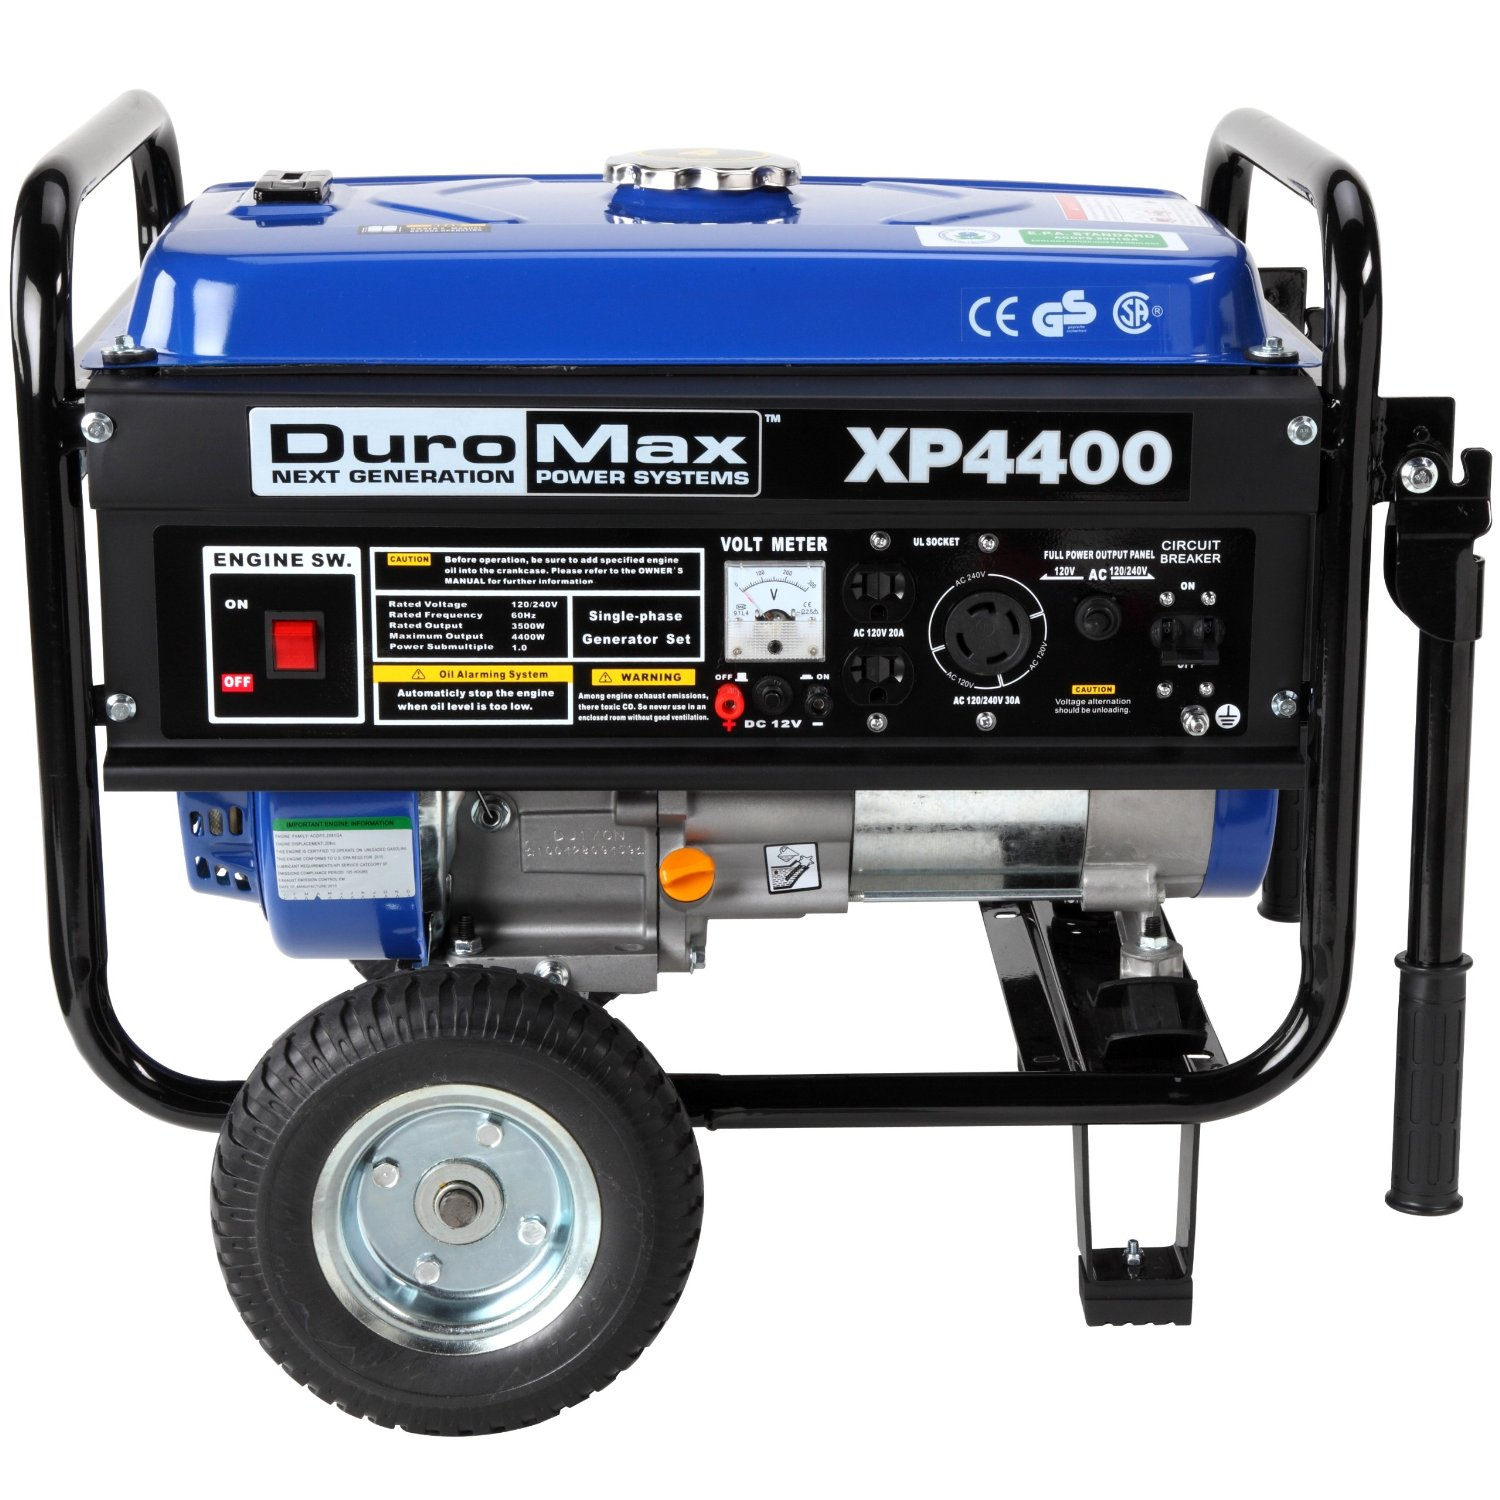 Best Generator Under 500 In 2019 The Popular Home Electrical Generators Backup Emergency Duromax Xp 4400 Gas Powered